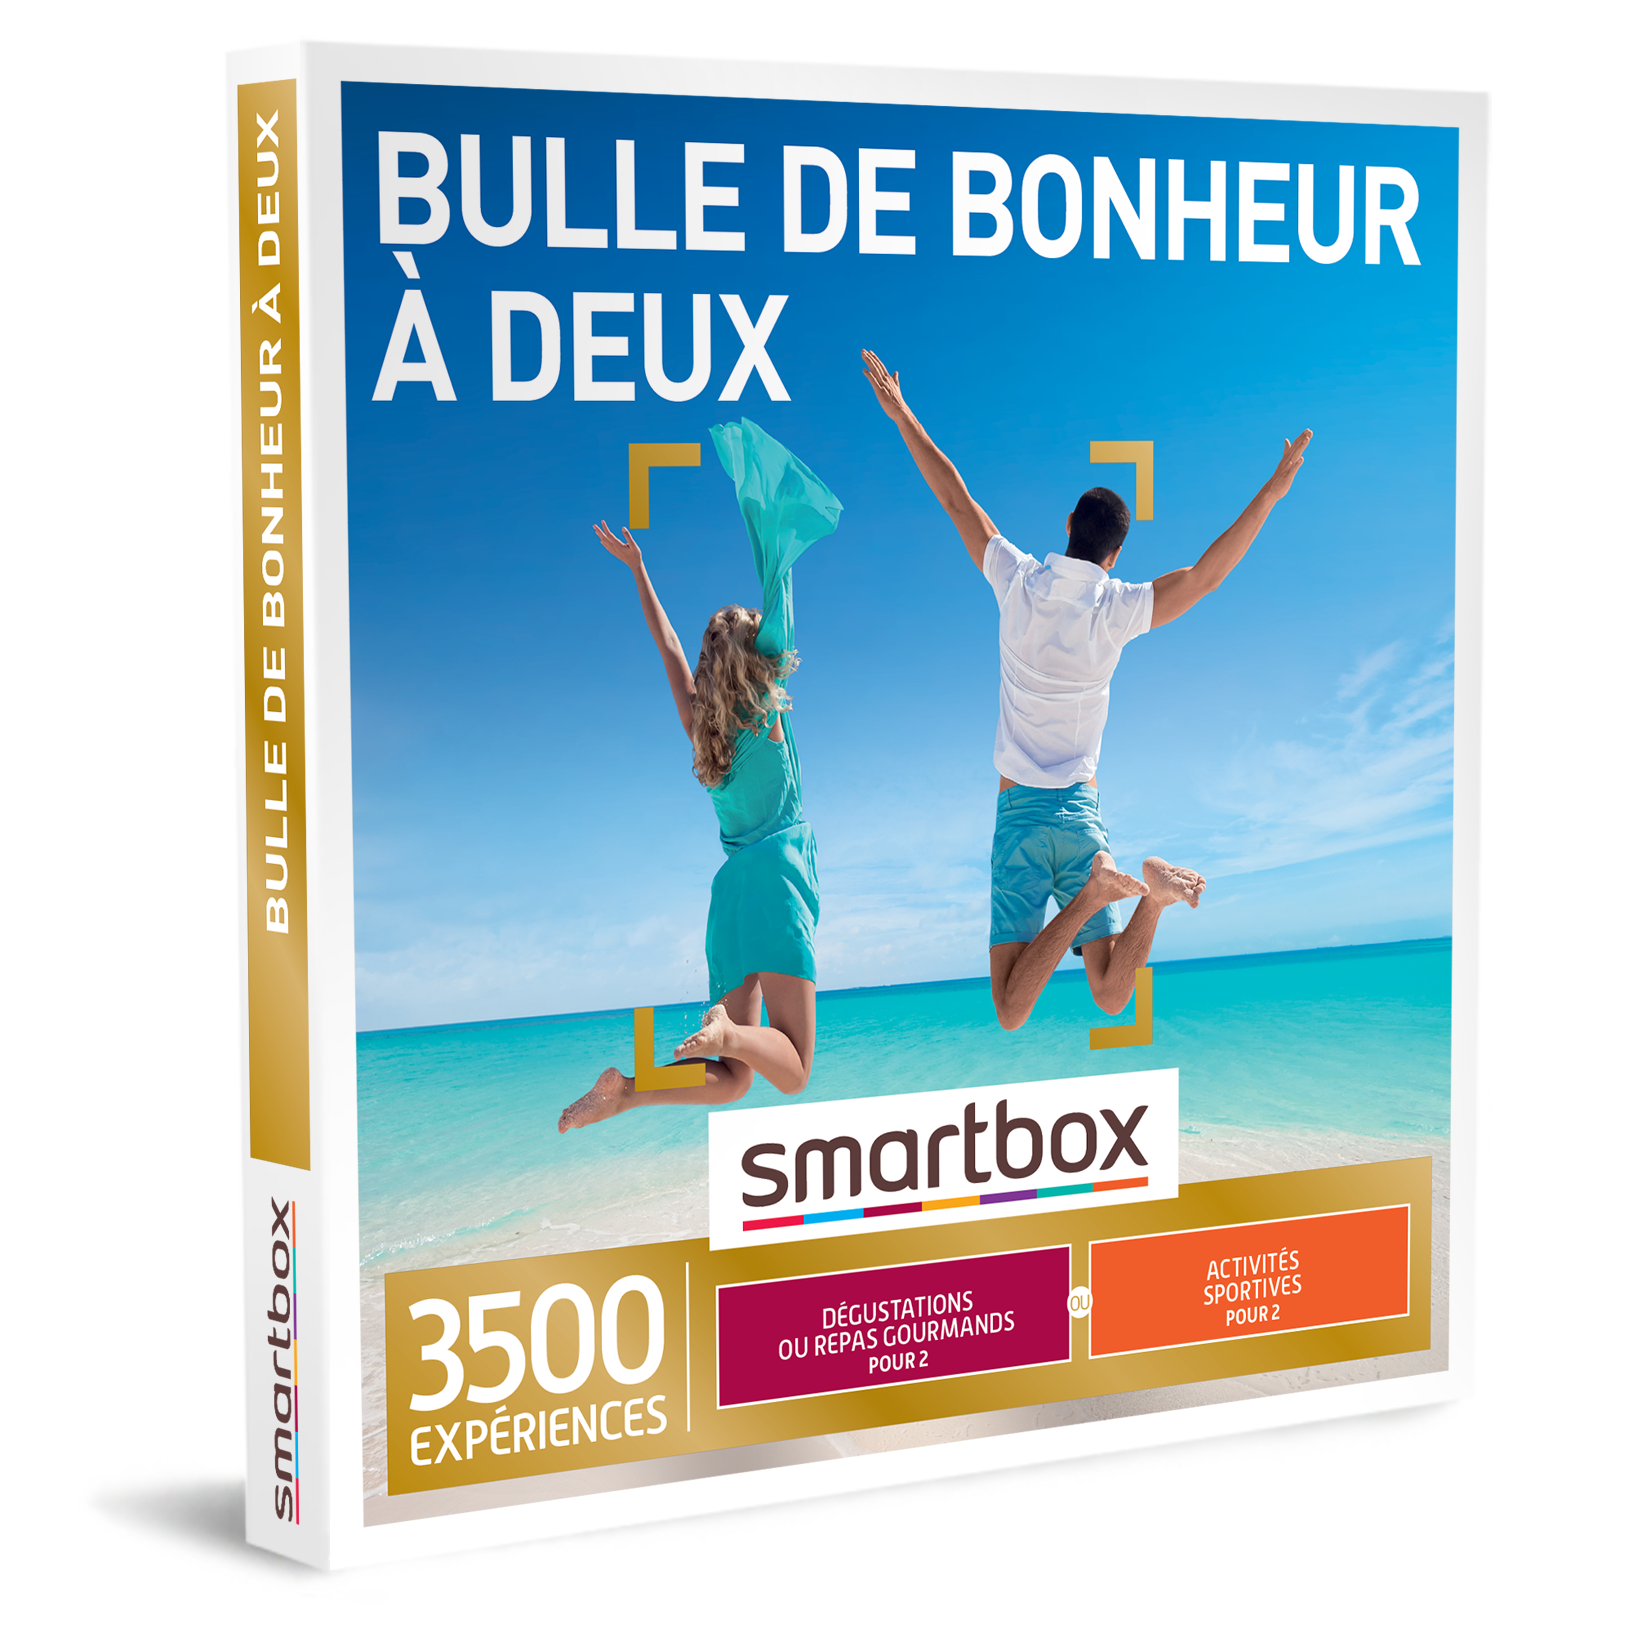 https://www.obiz.fr//medias/product_by_usage/image/146000/146375/bb77170edfe411dec367d27b8e9c2854.png